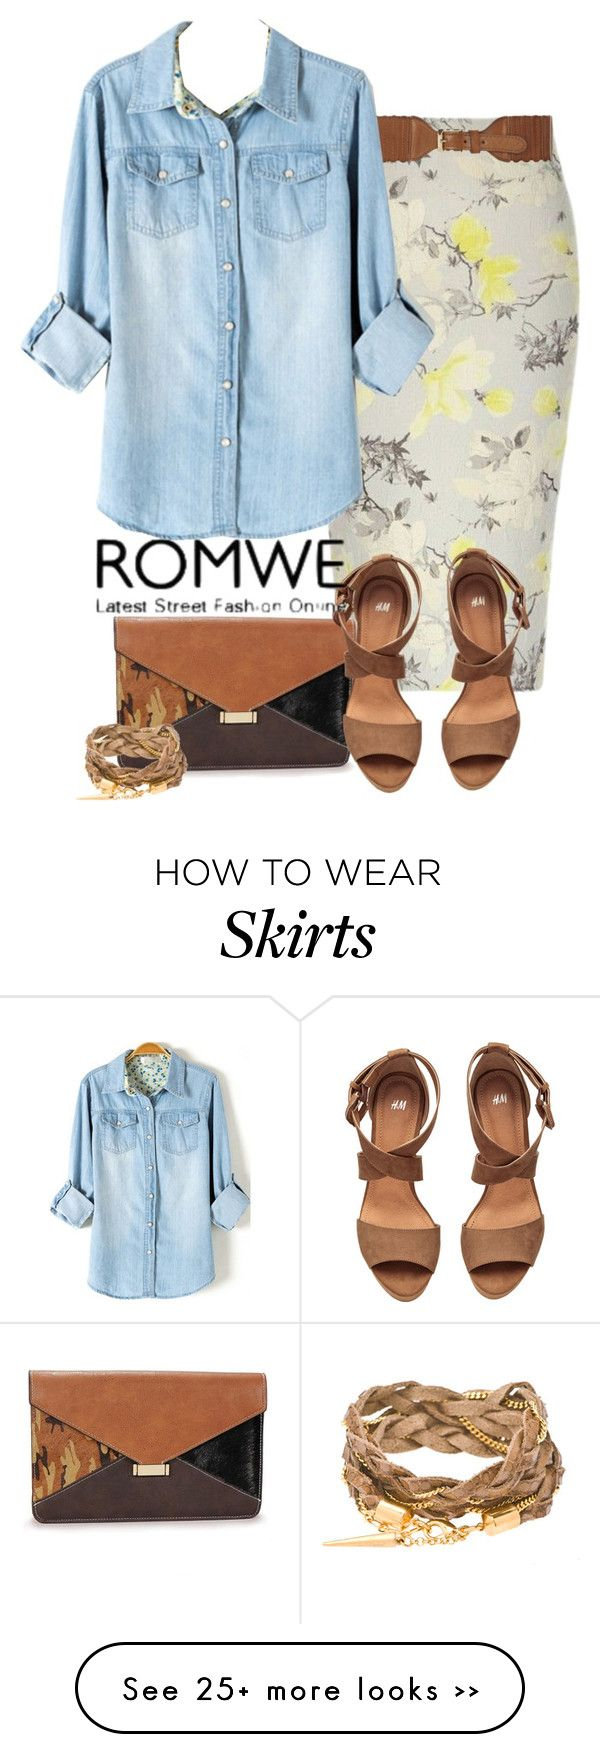 """Chambray Shirt & Floral Skirt"" by catherinem on Polyvore featuring River Island, Dorothy Perkins, H&M, romwe and contestentry"